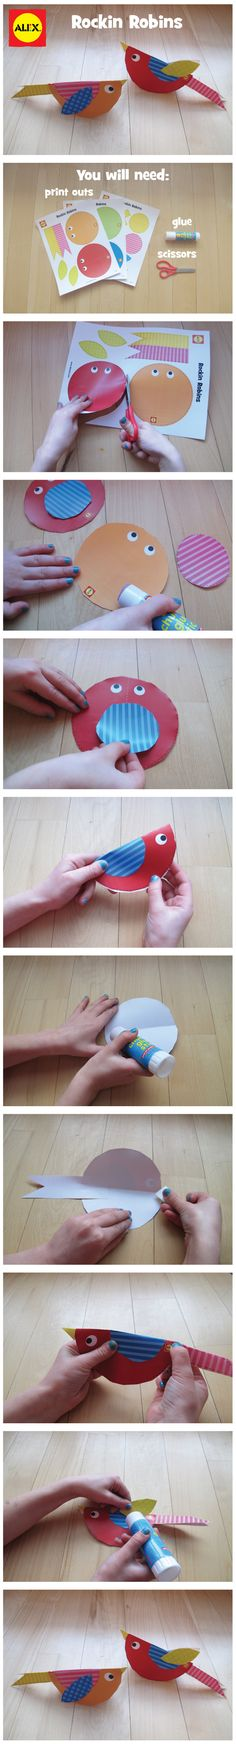 Cut, assemble and paste together these Rocking Robins using our free printable   alextoys.com